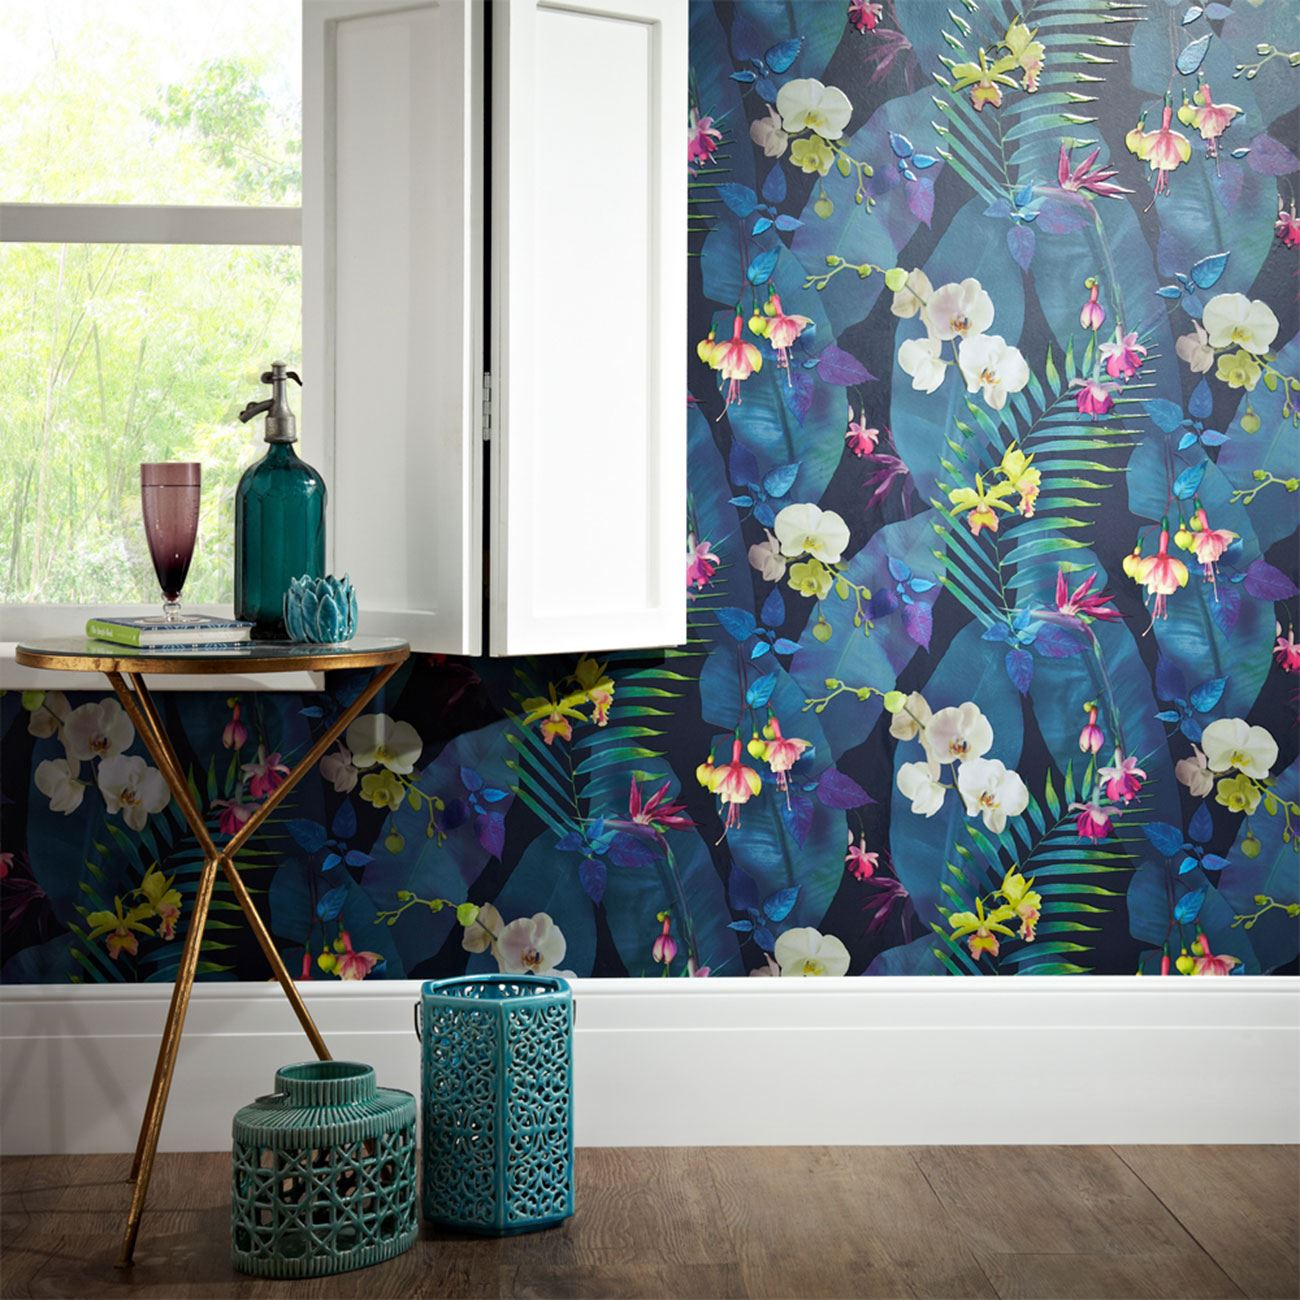 shabby chic floral wallpaper in various designs wall decor new  ebay - shabbychicfloralwallpaperinvariousdesignswall